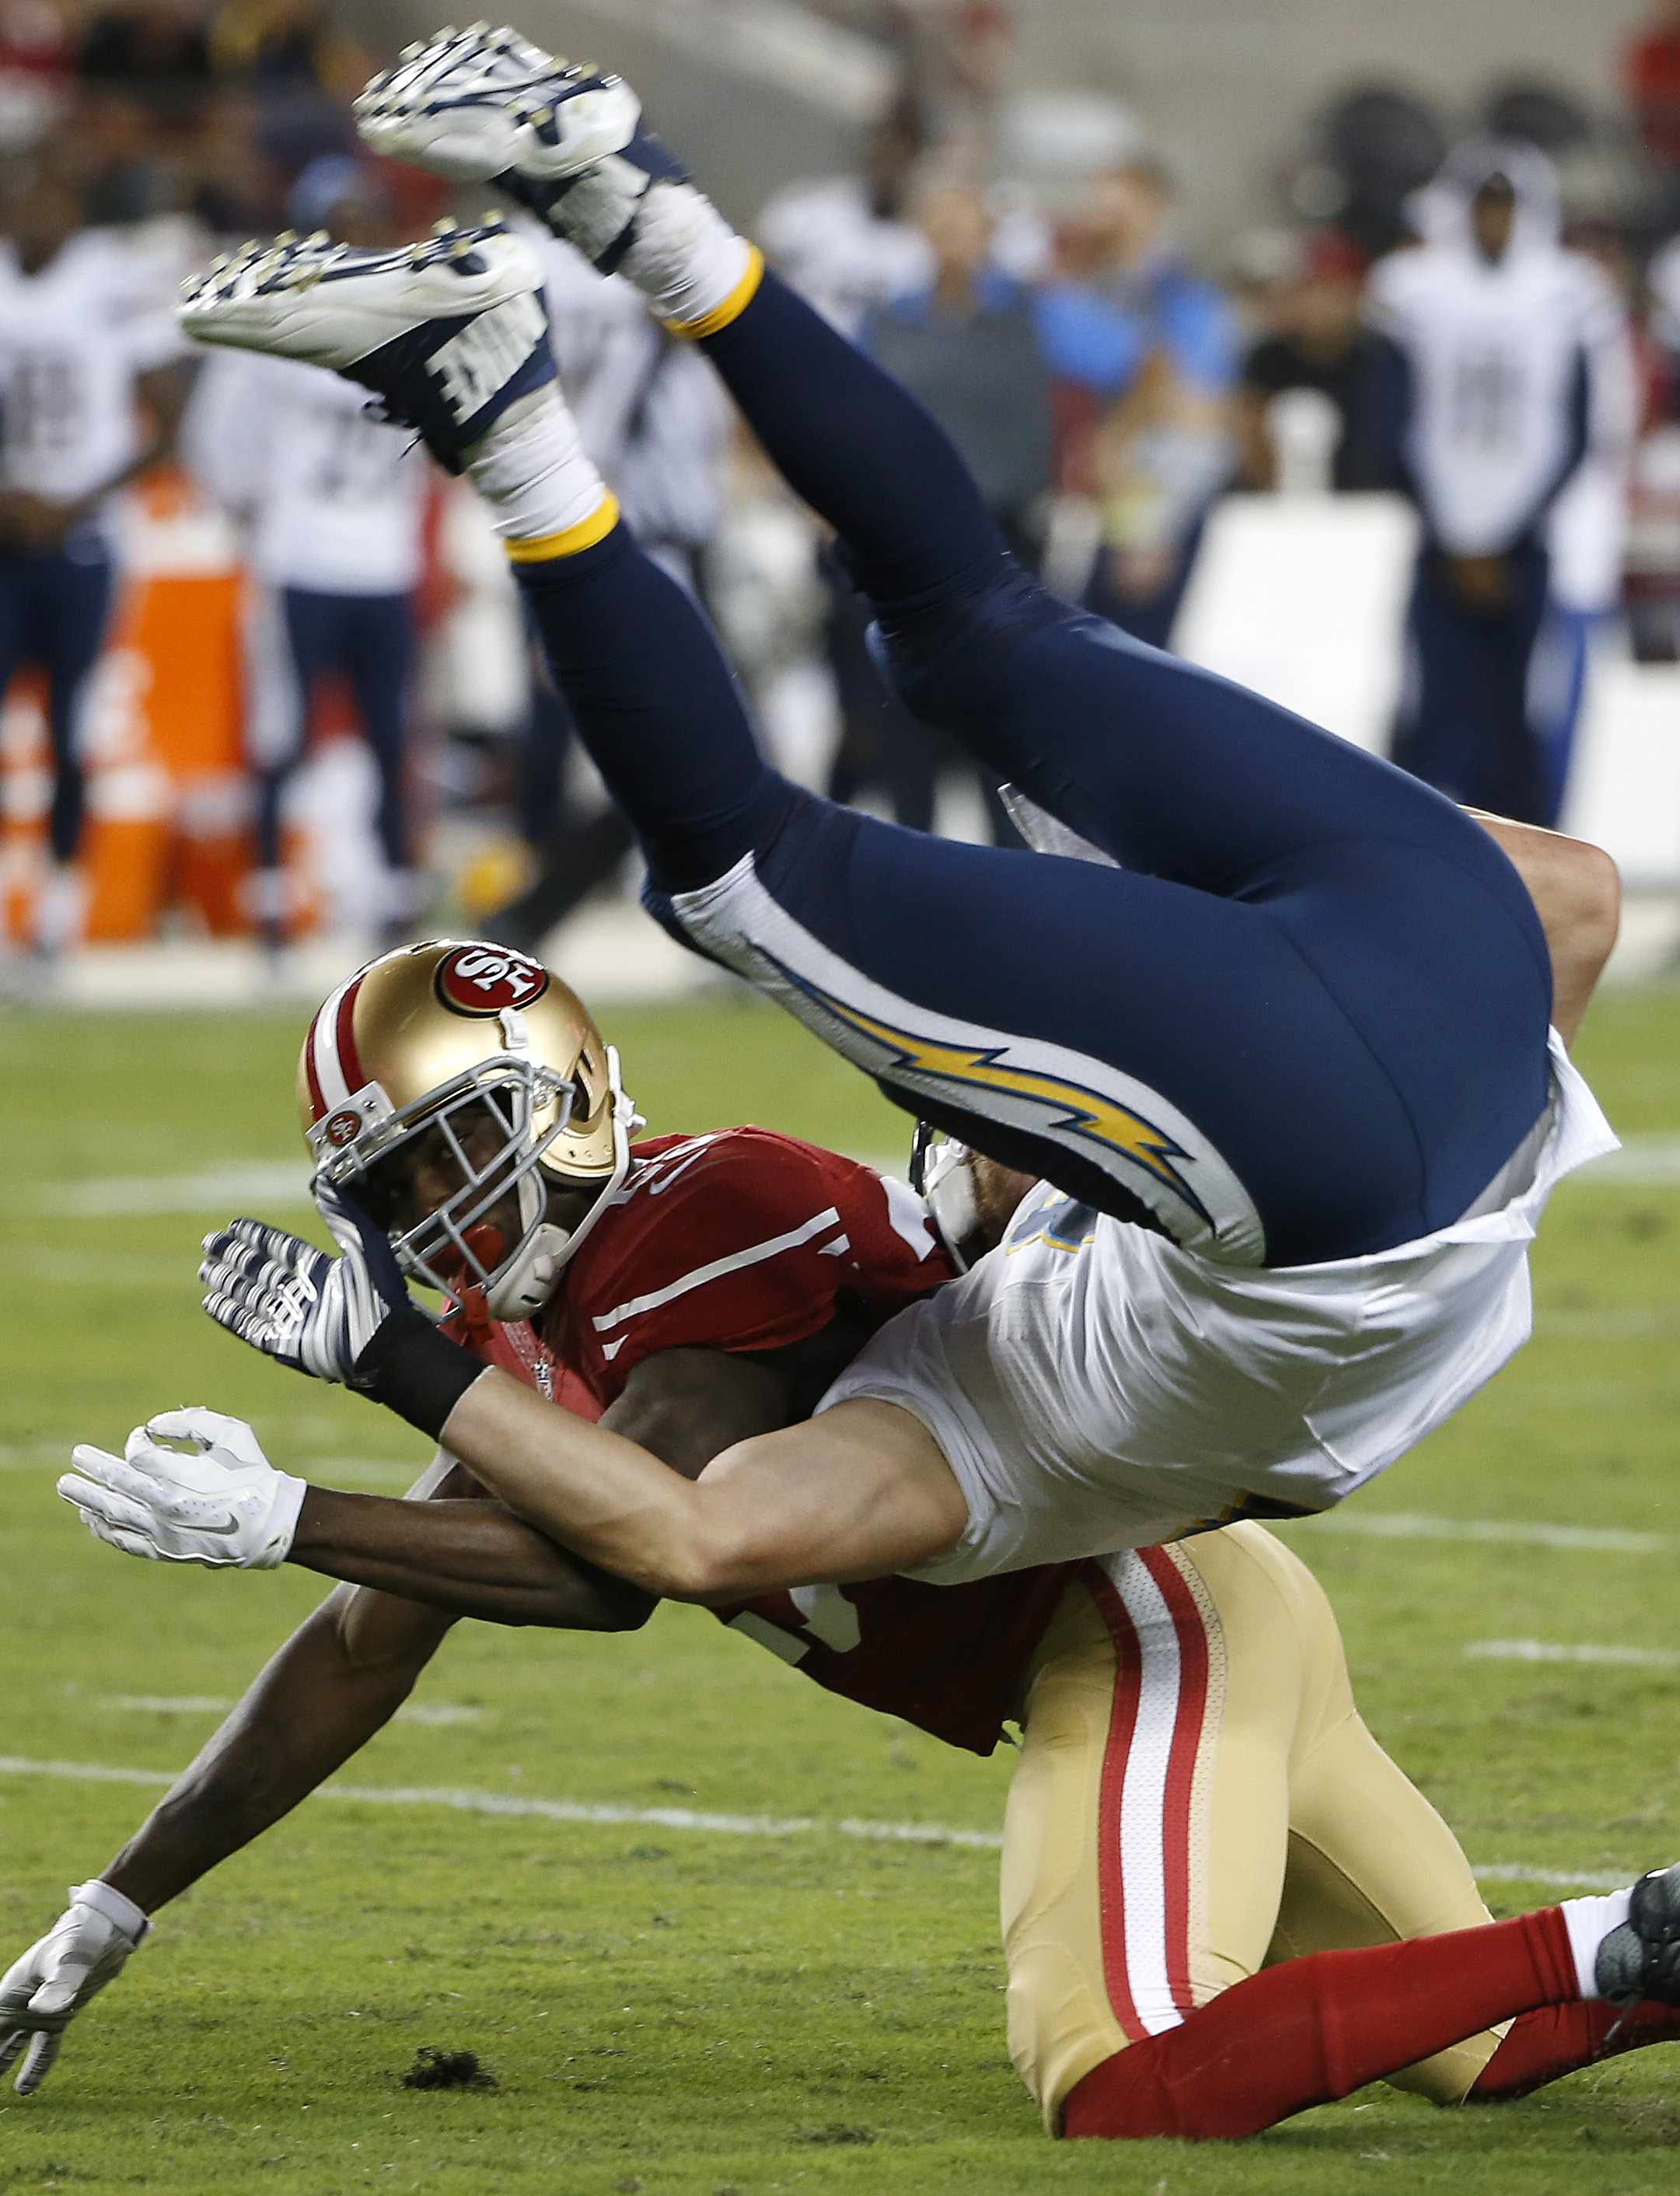 San Diego Chargers tight end John Phillips, top, falls over San Francisco 49ers strong safety Jimmie Ward during the first half of an NFL preseason football game in Santa Clara, Calif., Thursday, Sept. 3, 2015. (AP Photo/Tony Avelar)